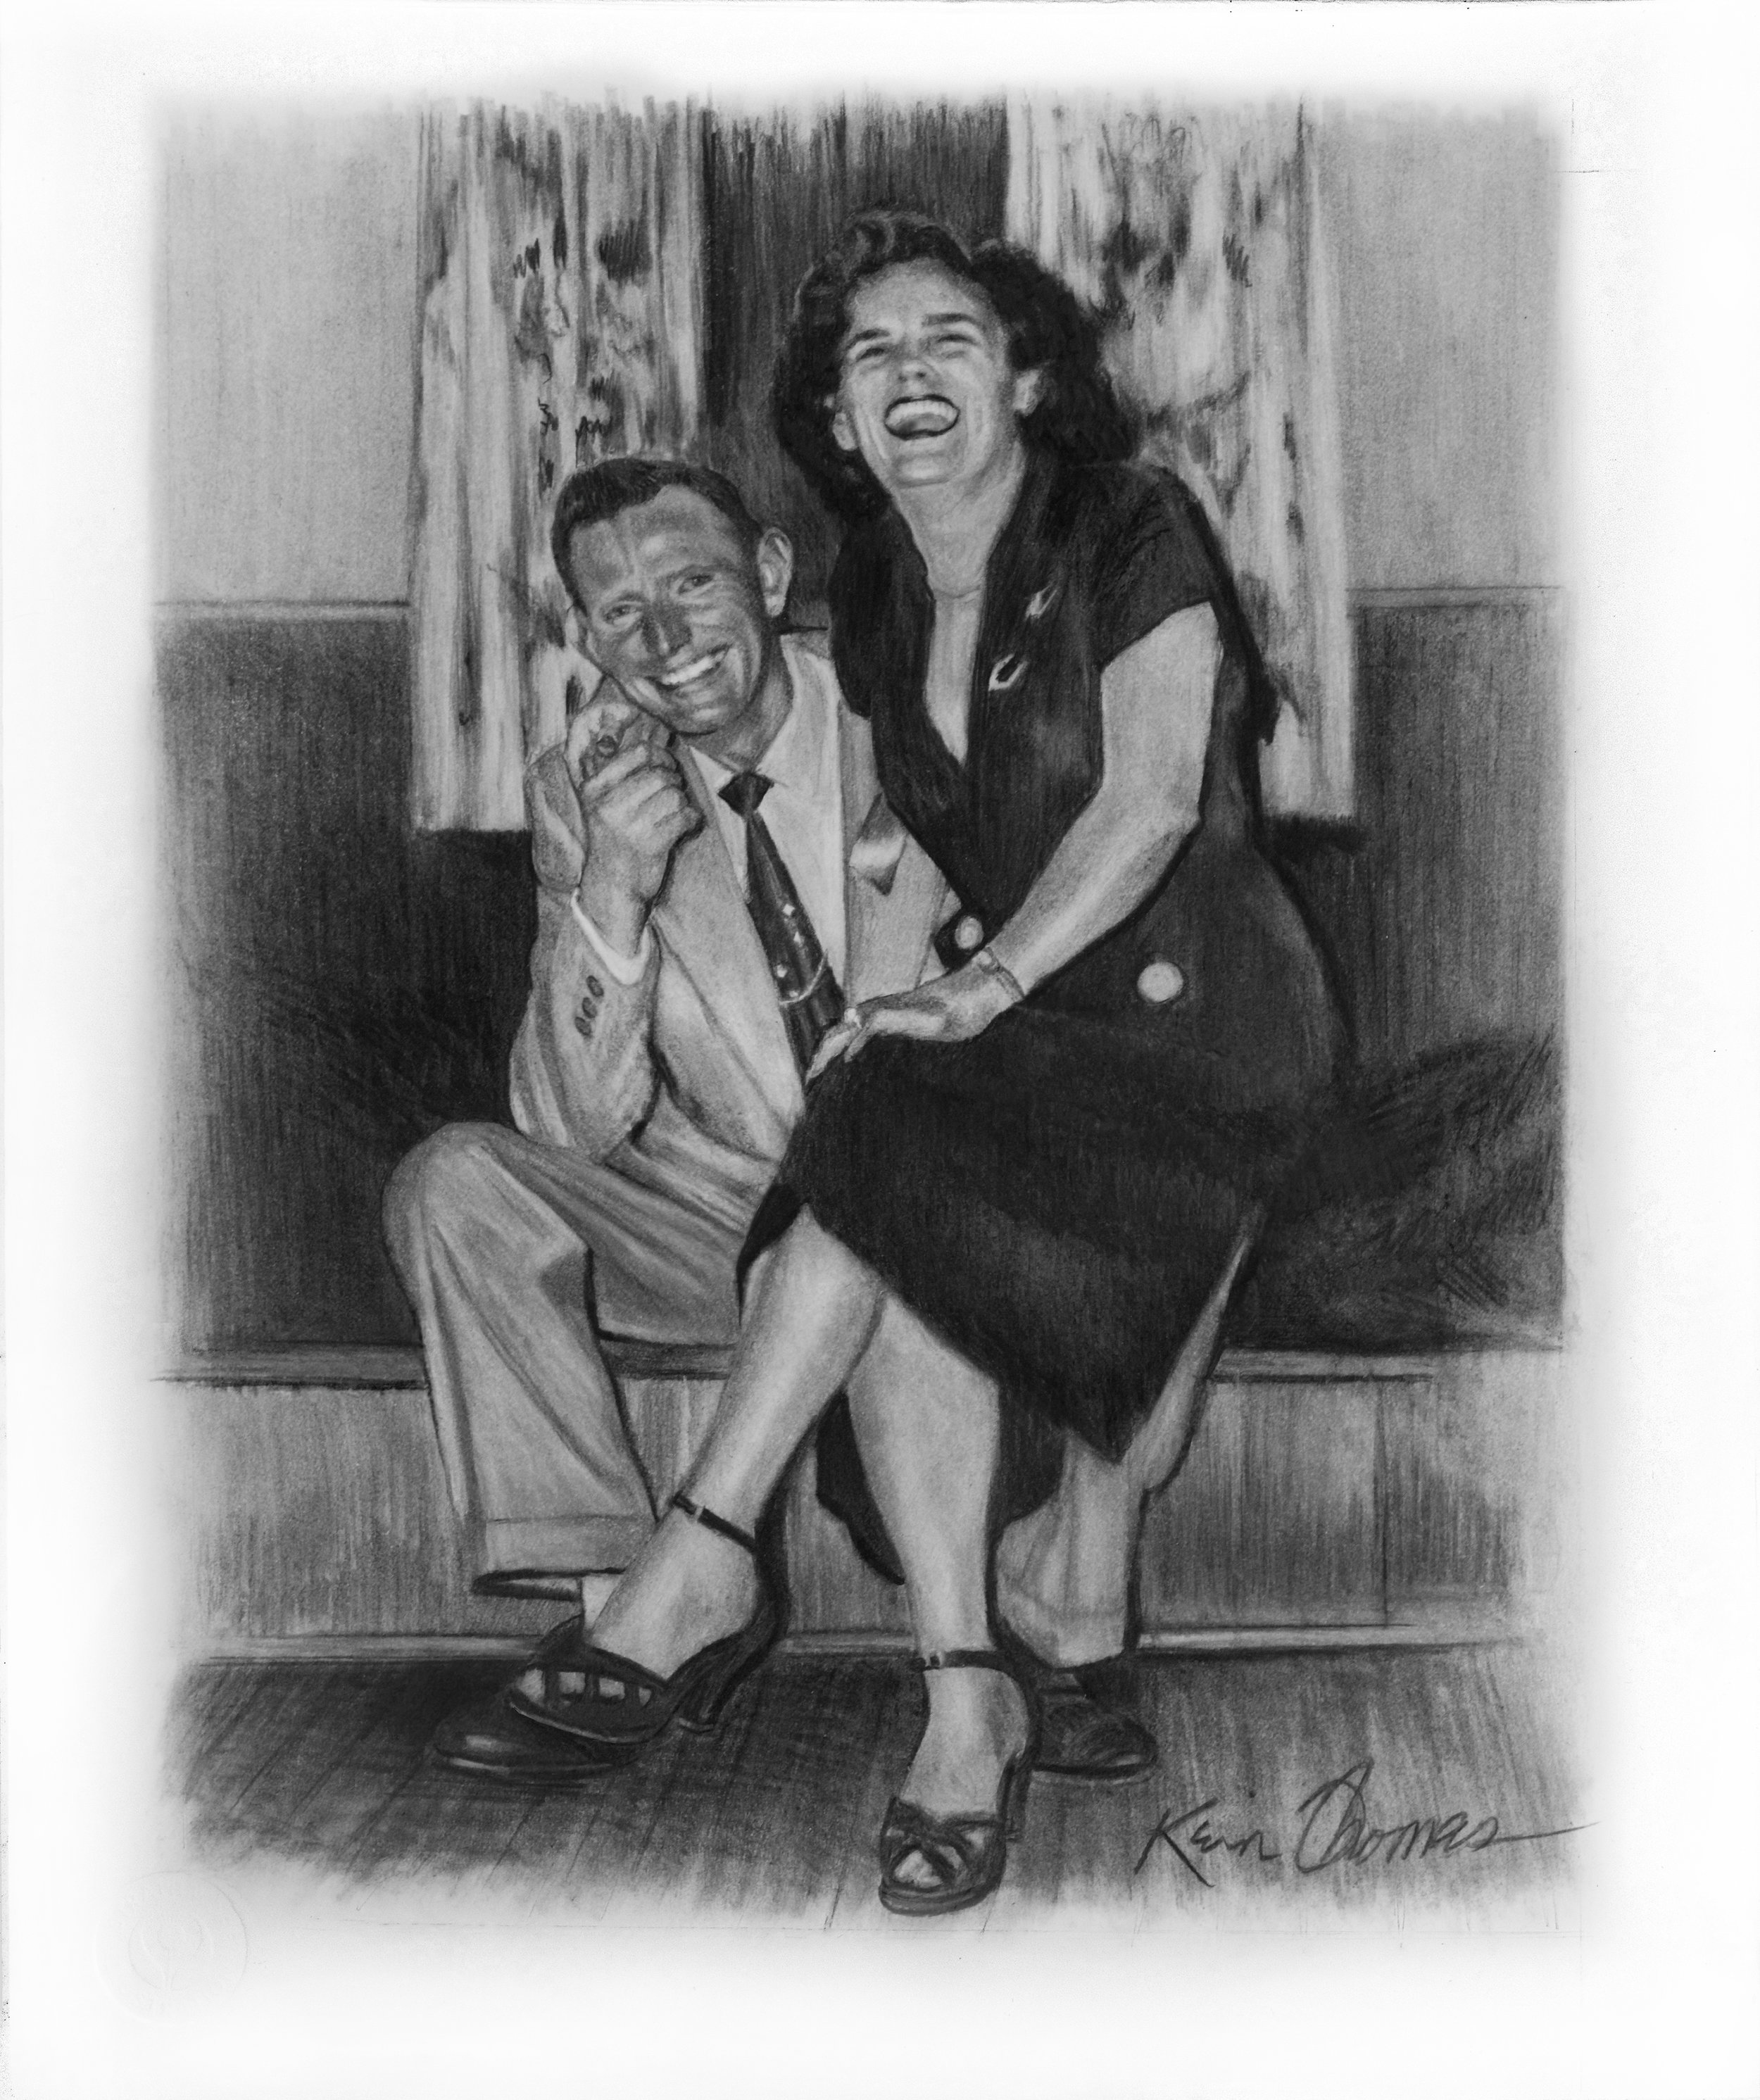 """""""Rendezvous"""" 10"""" x 12"""" Graphite on Illustration Board. Reference taken from the original black & white photo w/side note: Wedding 1955"""